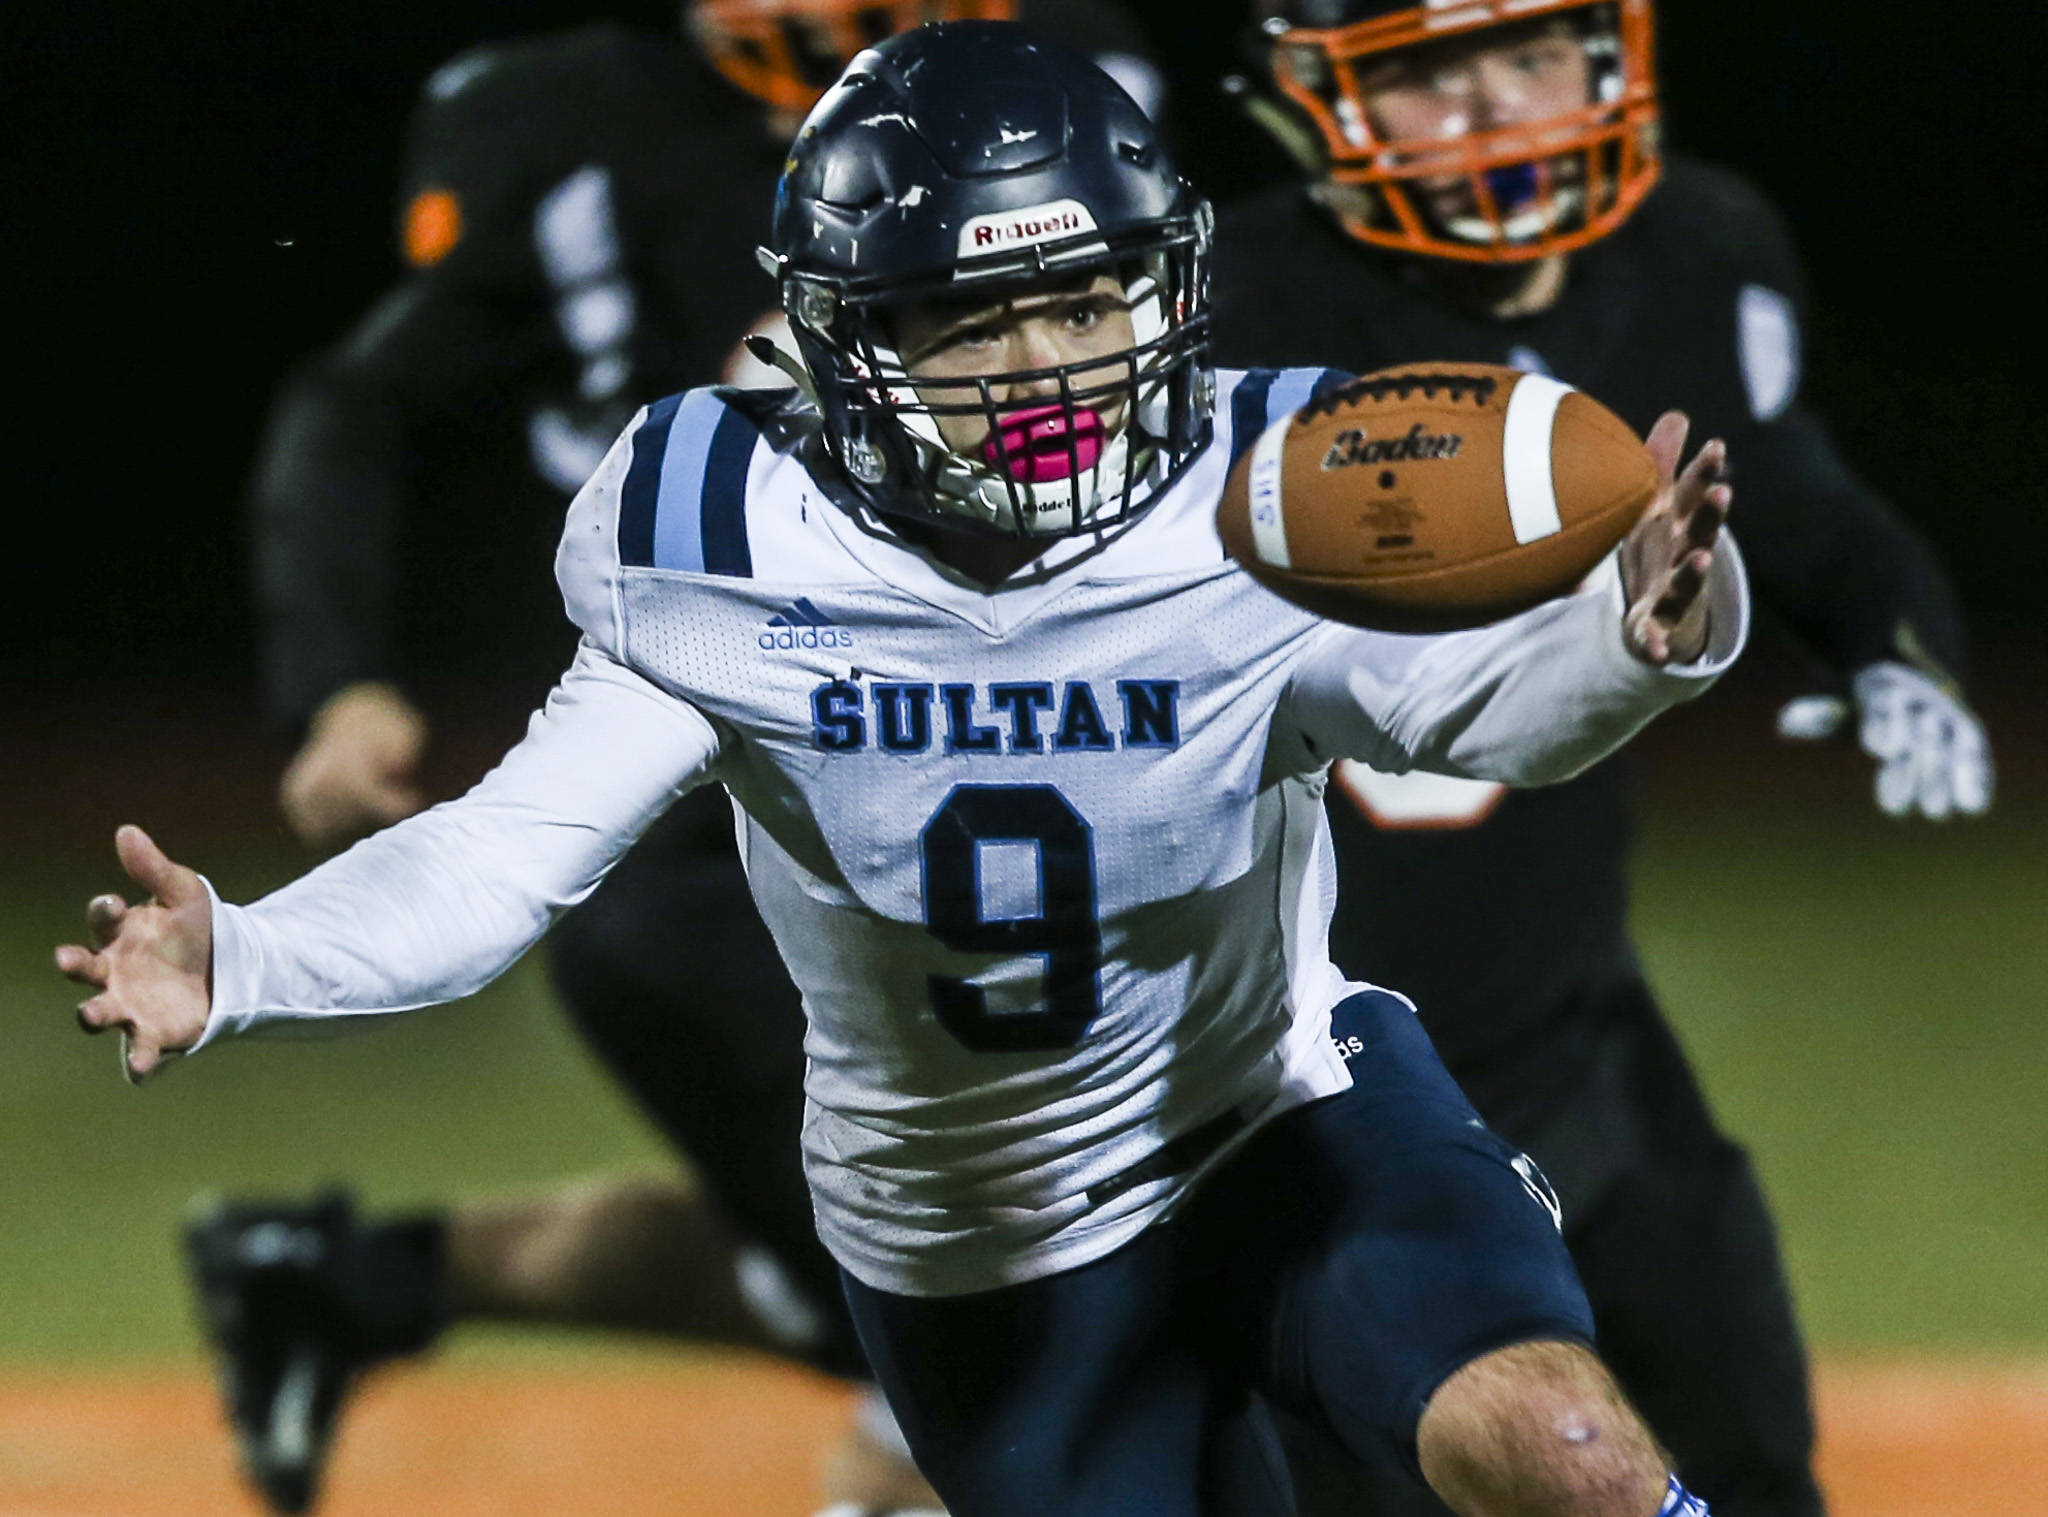 Sultan's Zane Sailor bobbles the ball during the game on Friday, Oct. 18, 2019 in Granite Falls. (Olivia Vanni / The Herald)